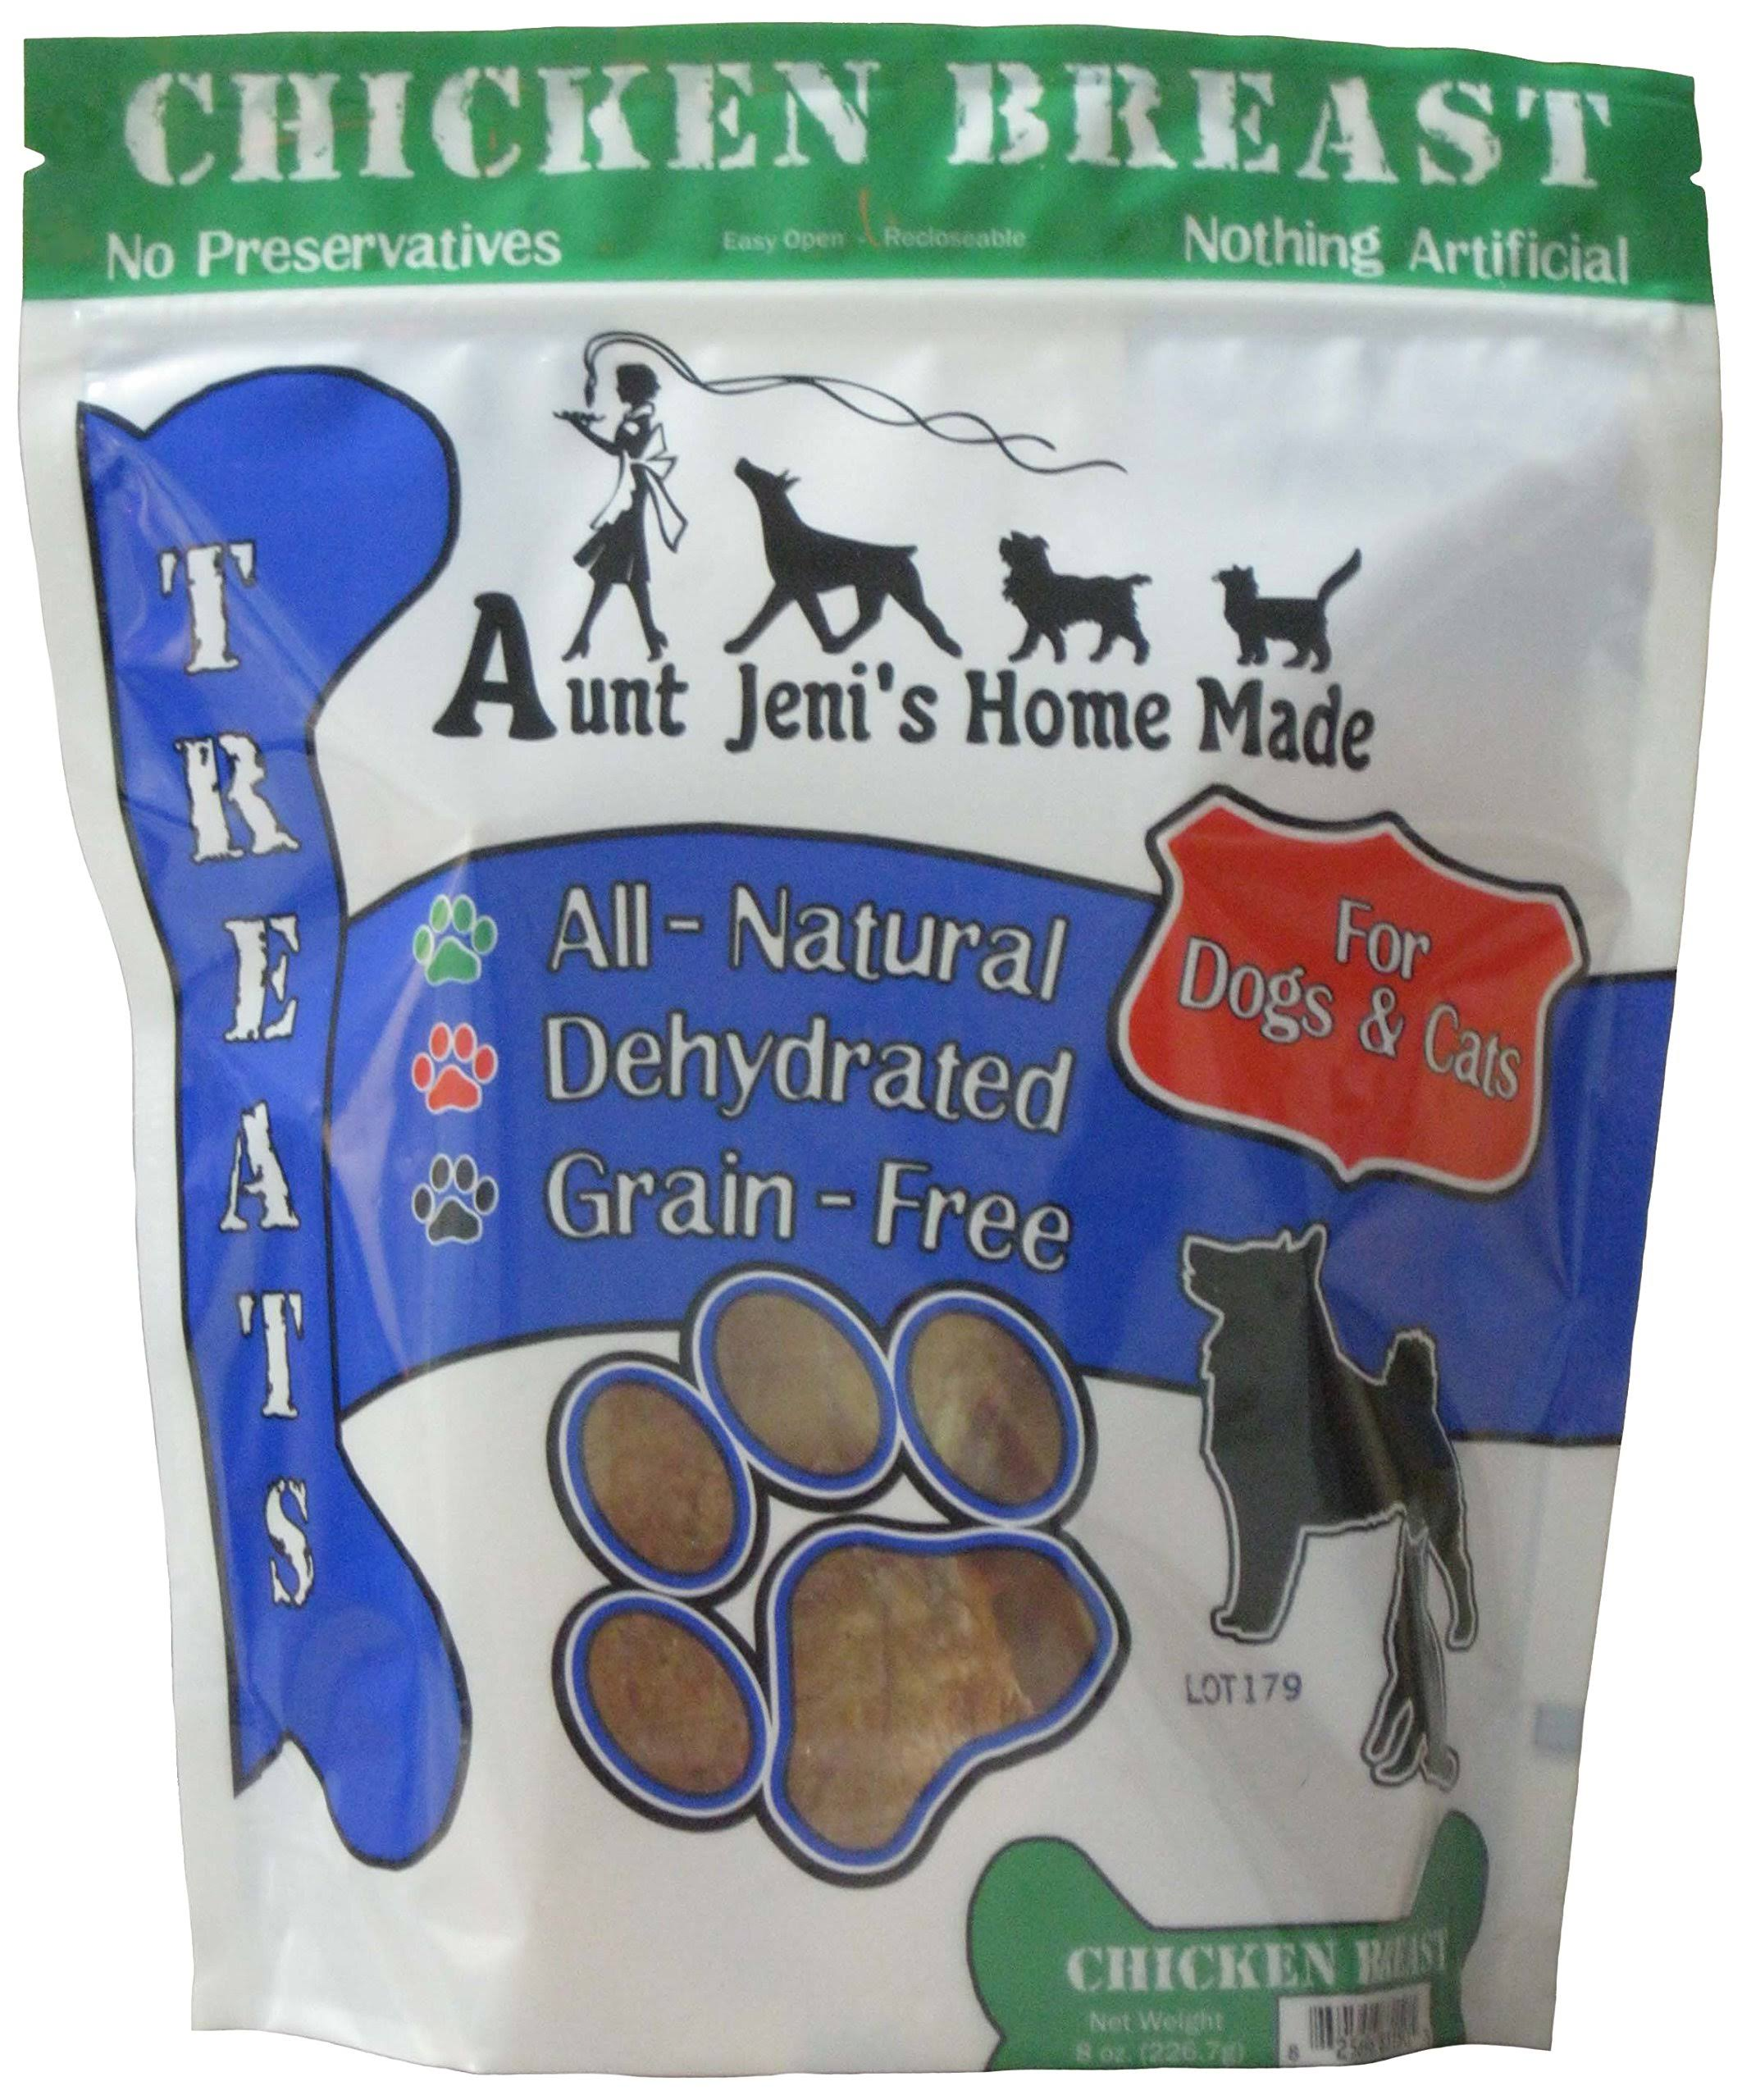 Aunt Jeni's Home Made Chicken Breast Pet Treats, 8 oz